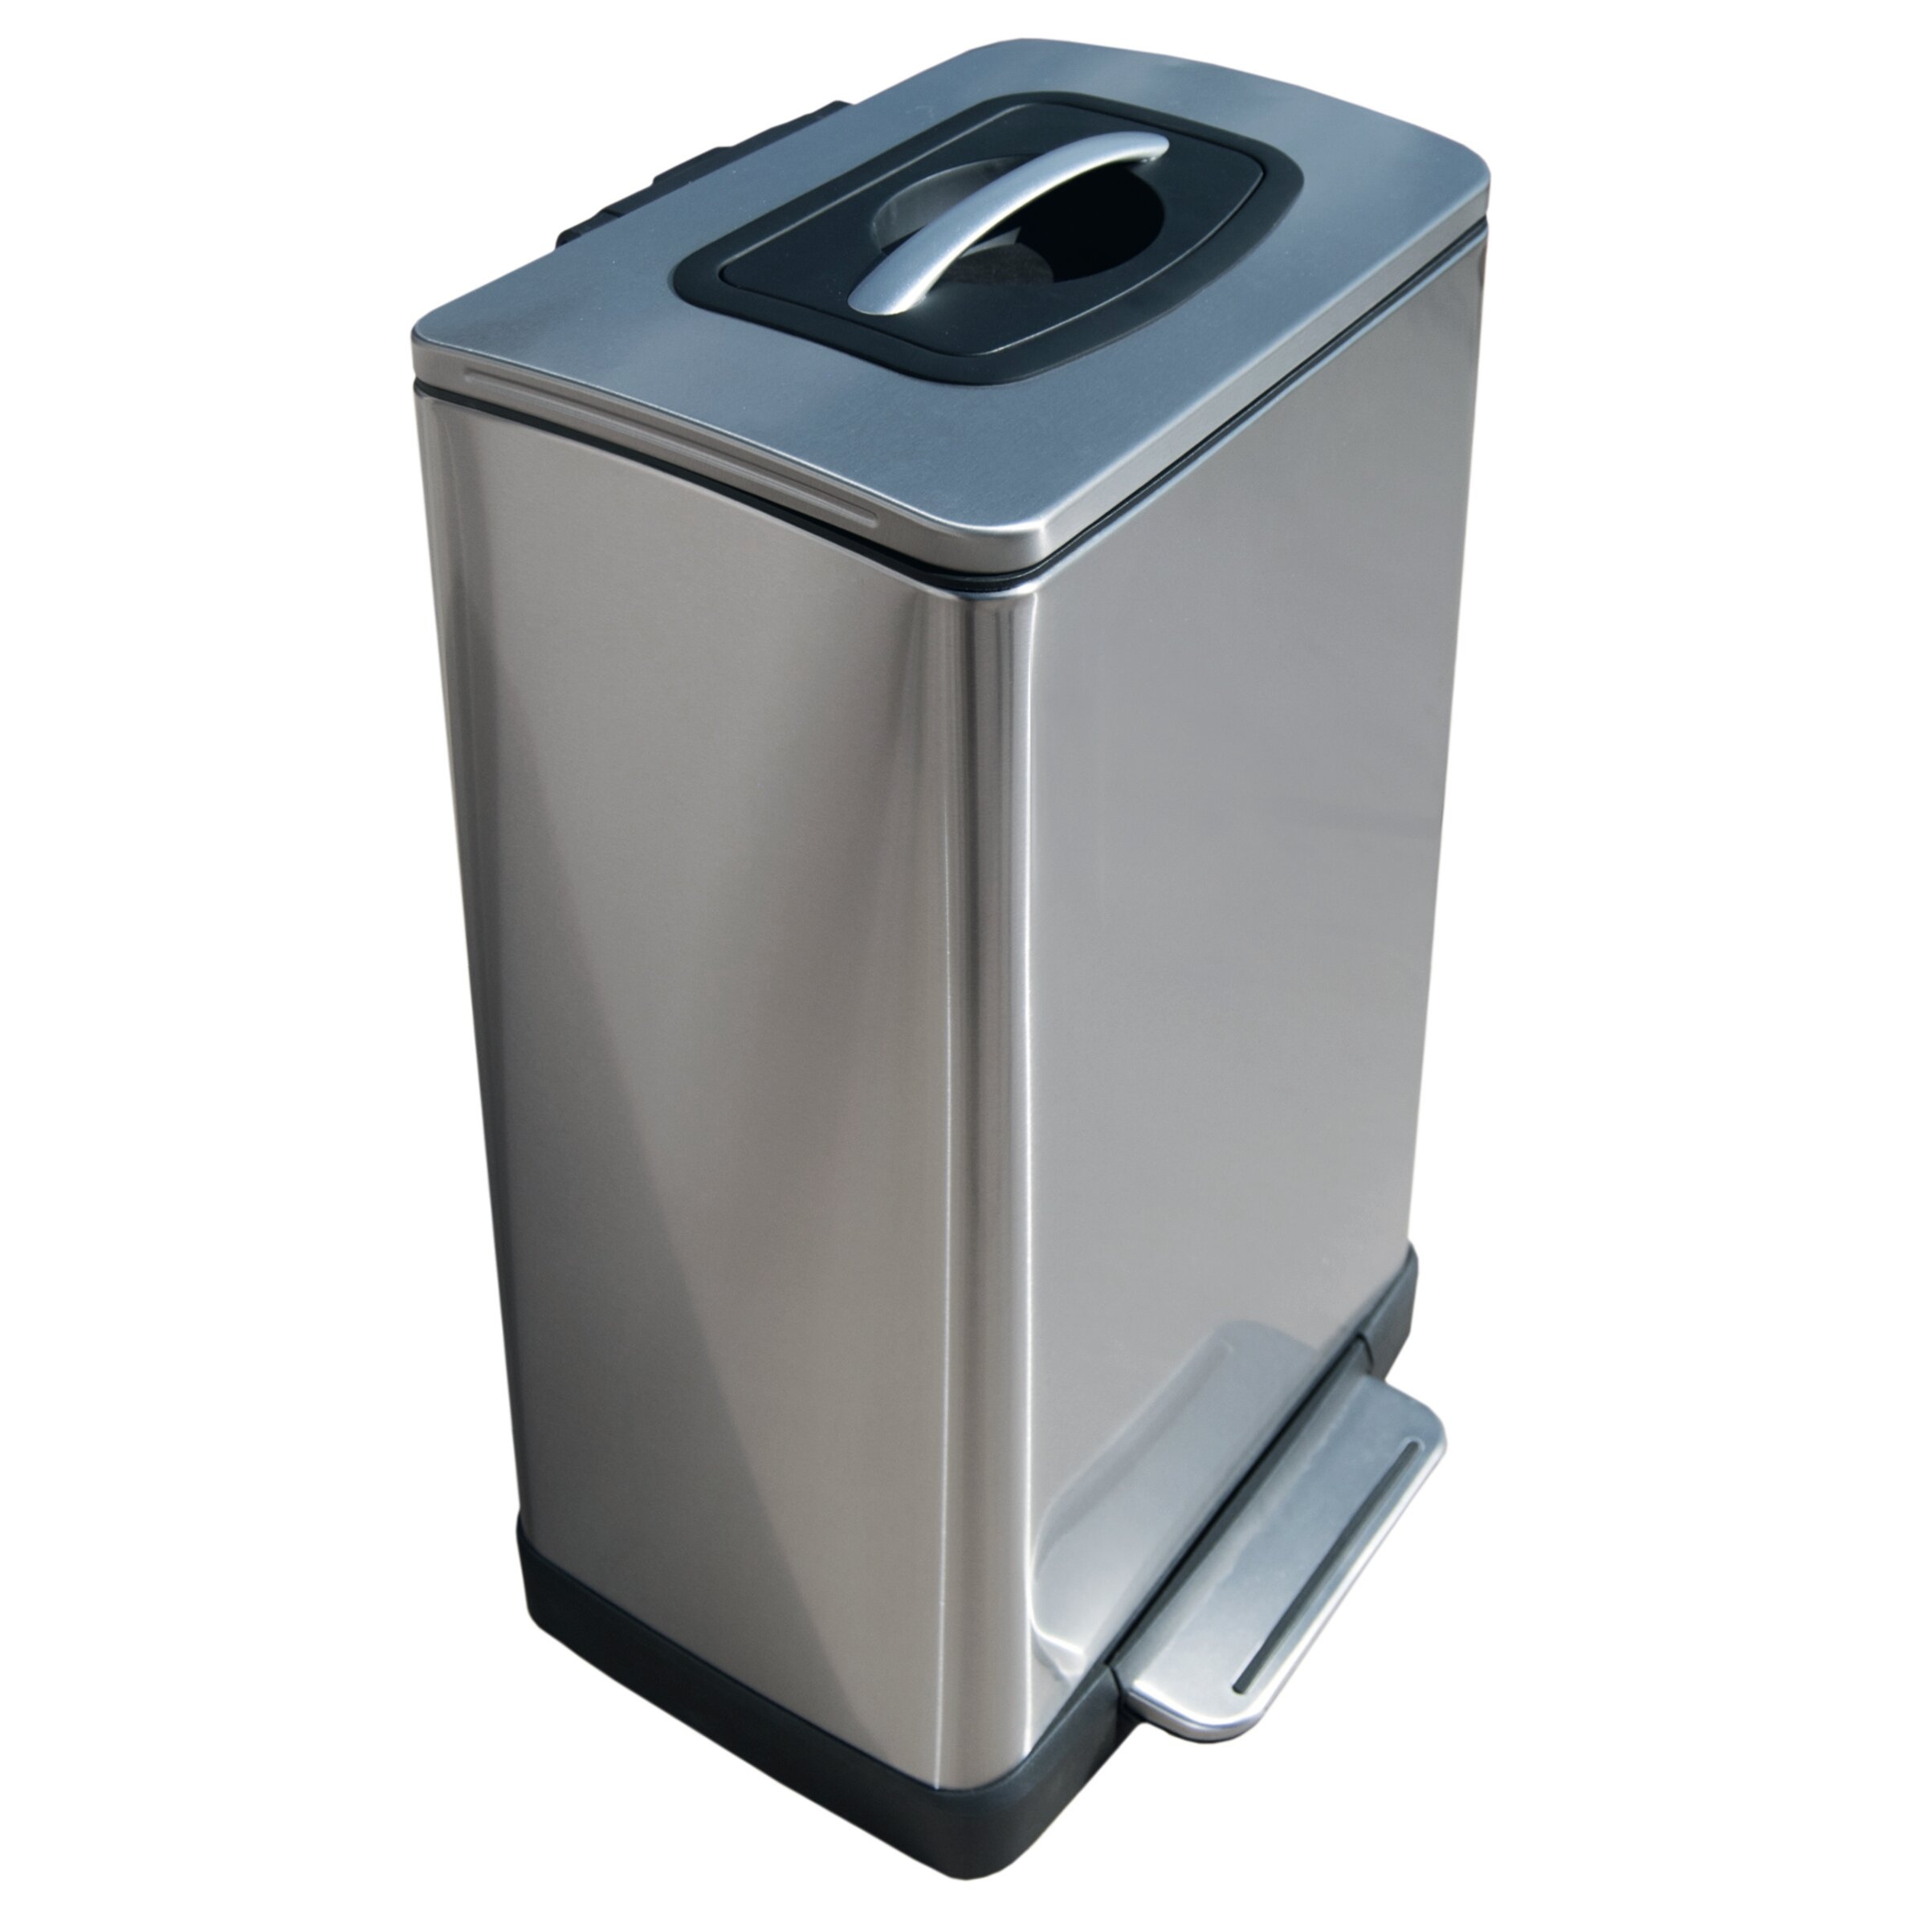 Tk products inc tk10 trash krusher 13 gallon trash Garbage compactor